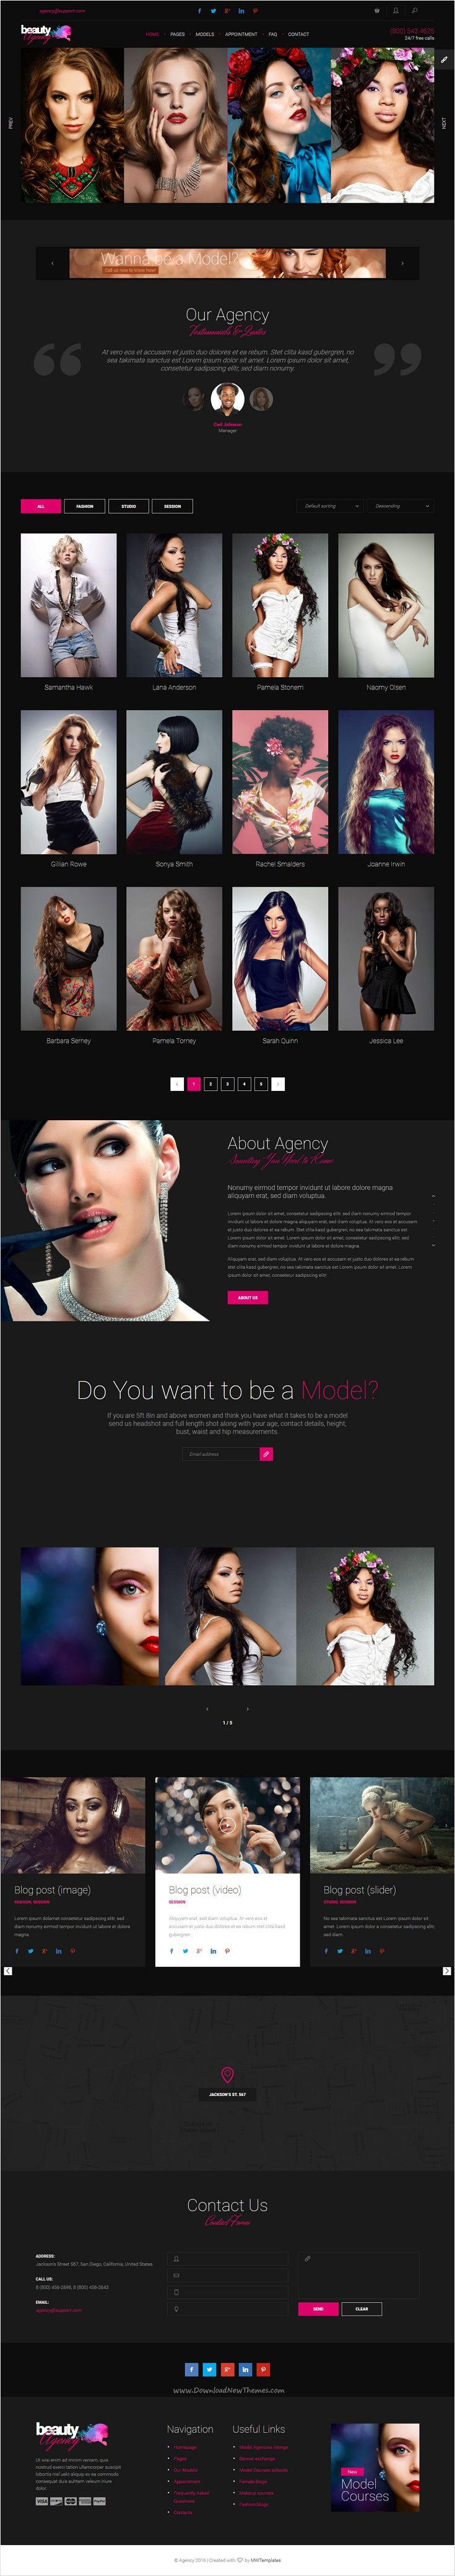 Models agency is beautifully design #Bootstrap HTML #template specifically for #fashion or #modelling agencies website download now➩ https://themeforest.net/item/models-agency-models-portfolio-html-template/17447156?ref=Datasata